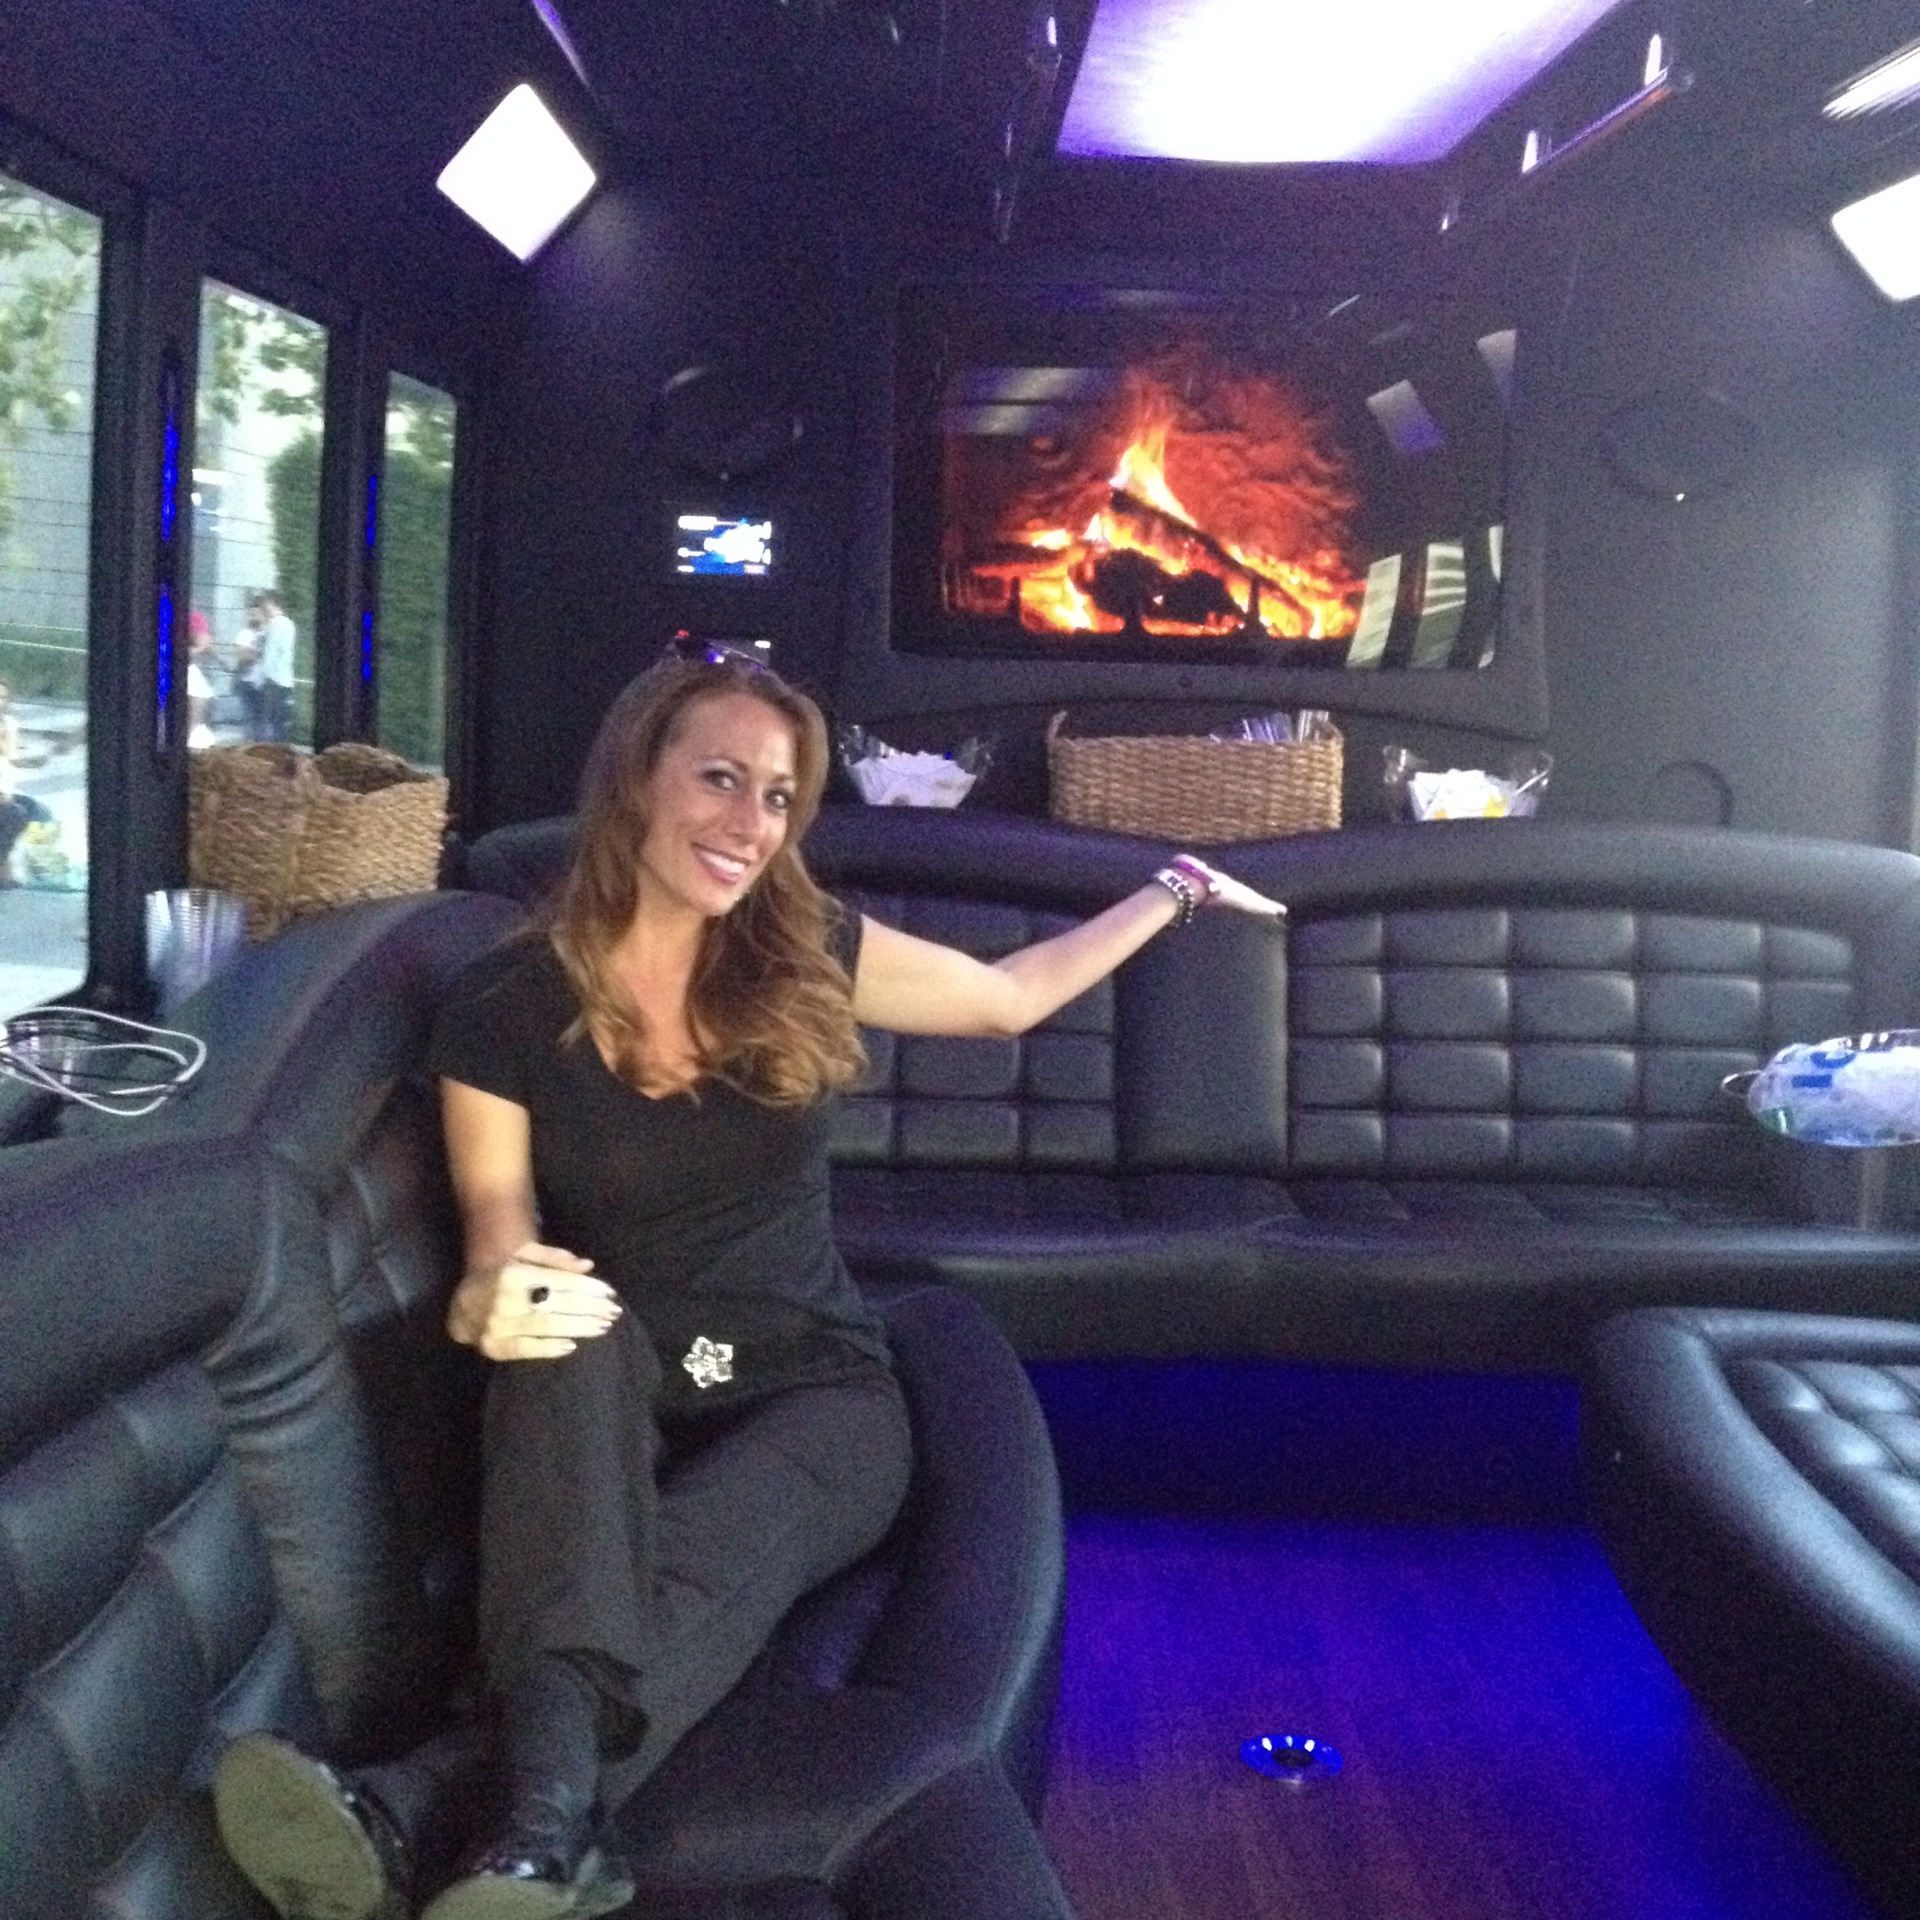 VIP Shuttle Hostess - E3